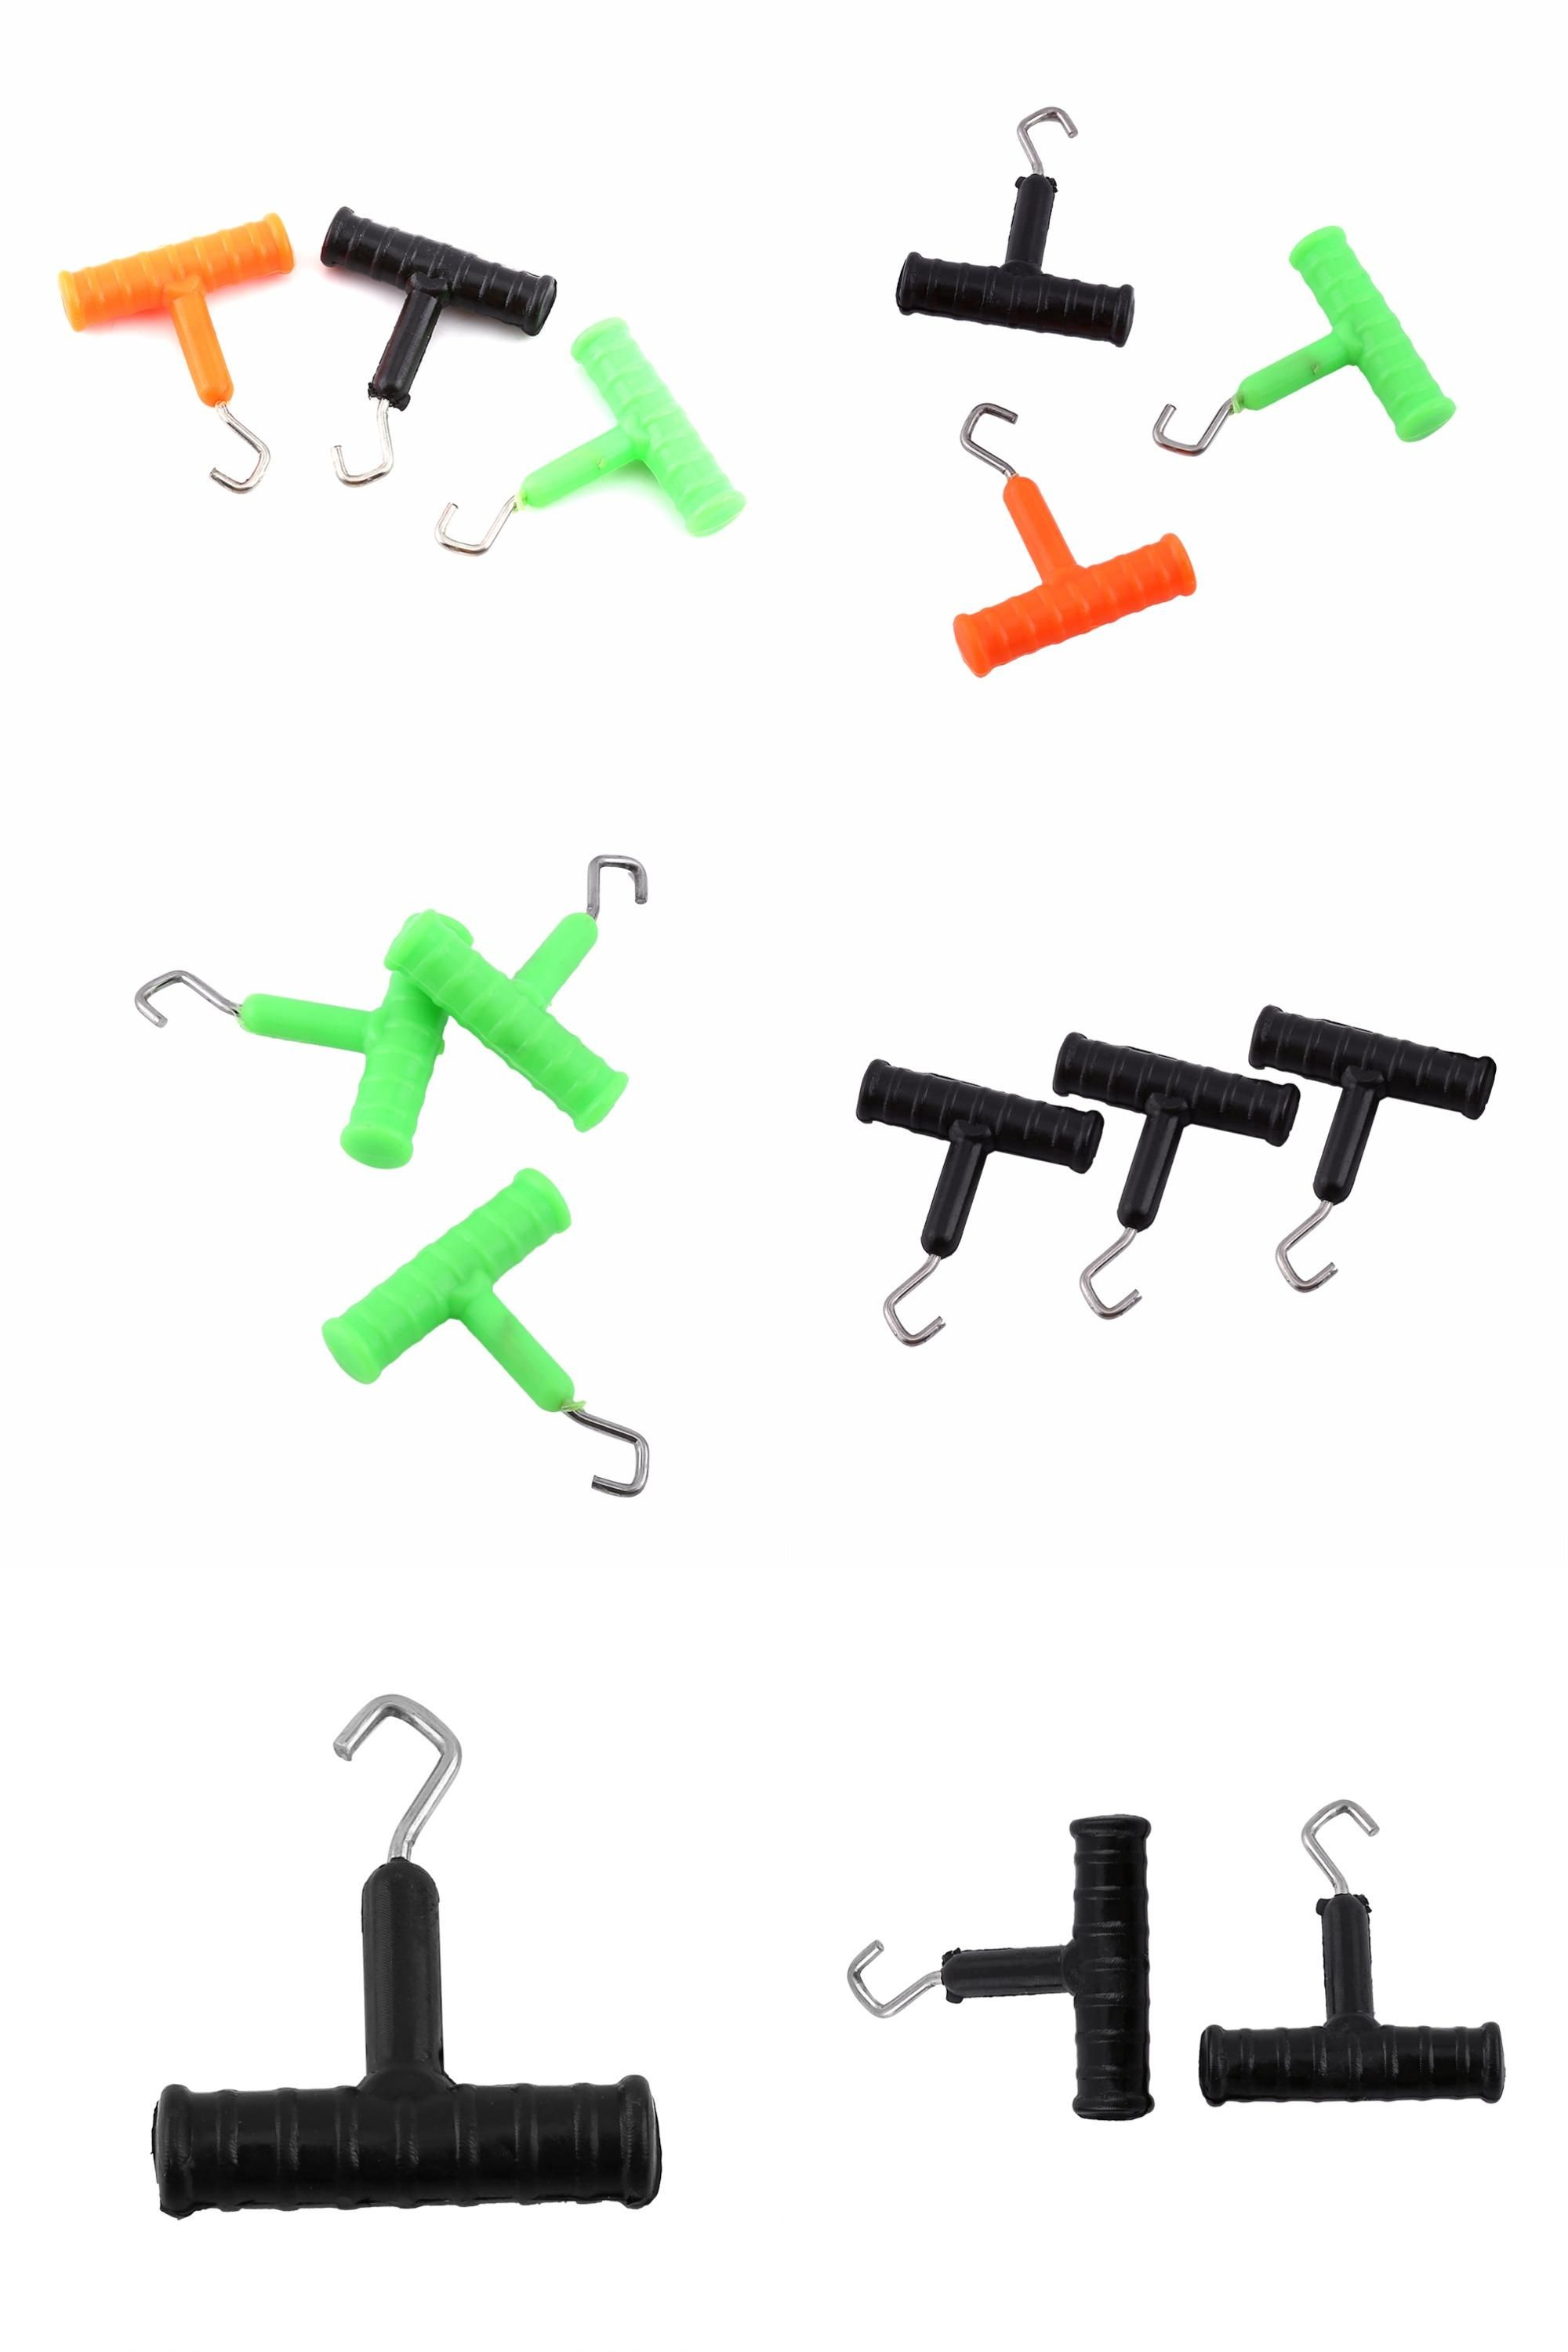 Visit to buy 3pcs fishing knot puller stainless steel fishing visit to buy 3pcs fishing knot puller stainless steel fishing hair rig making tool pooptronica Images